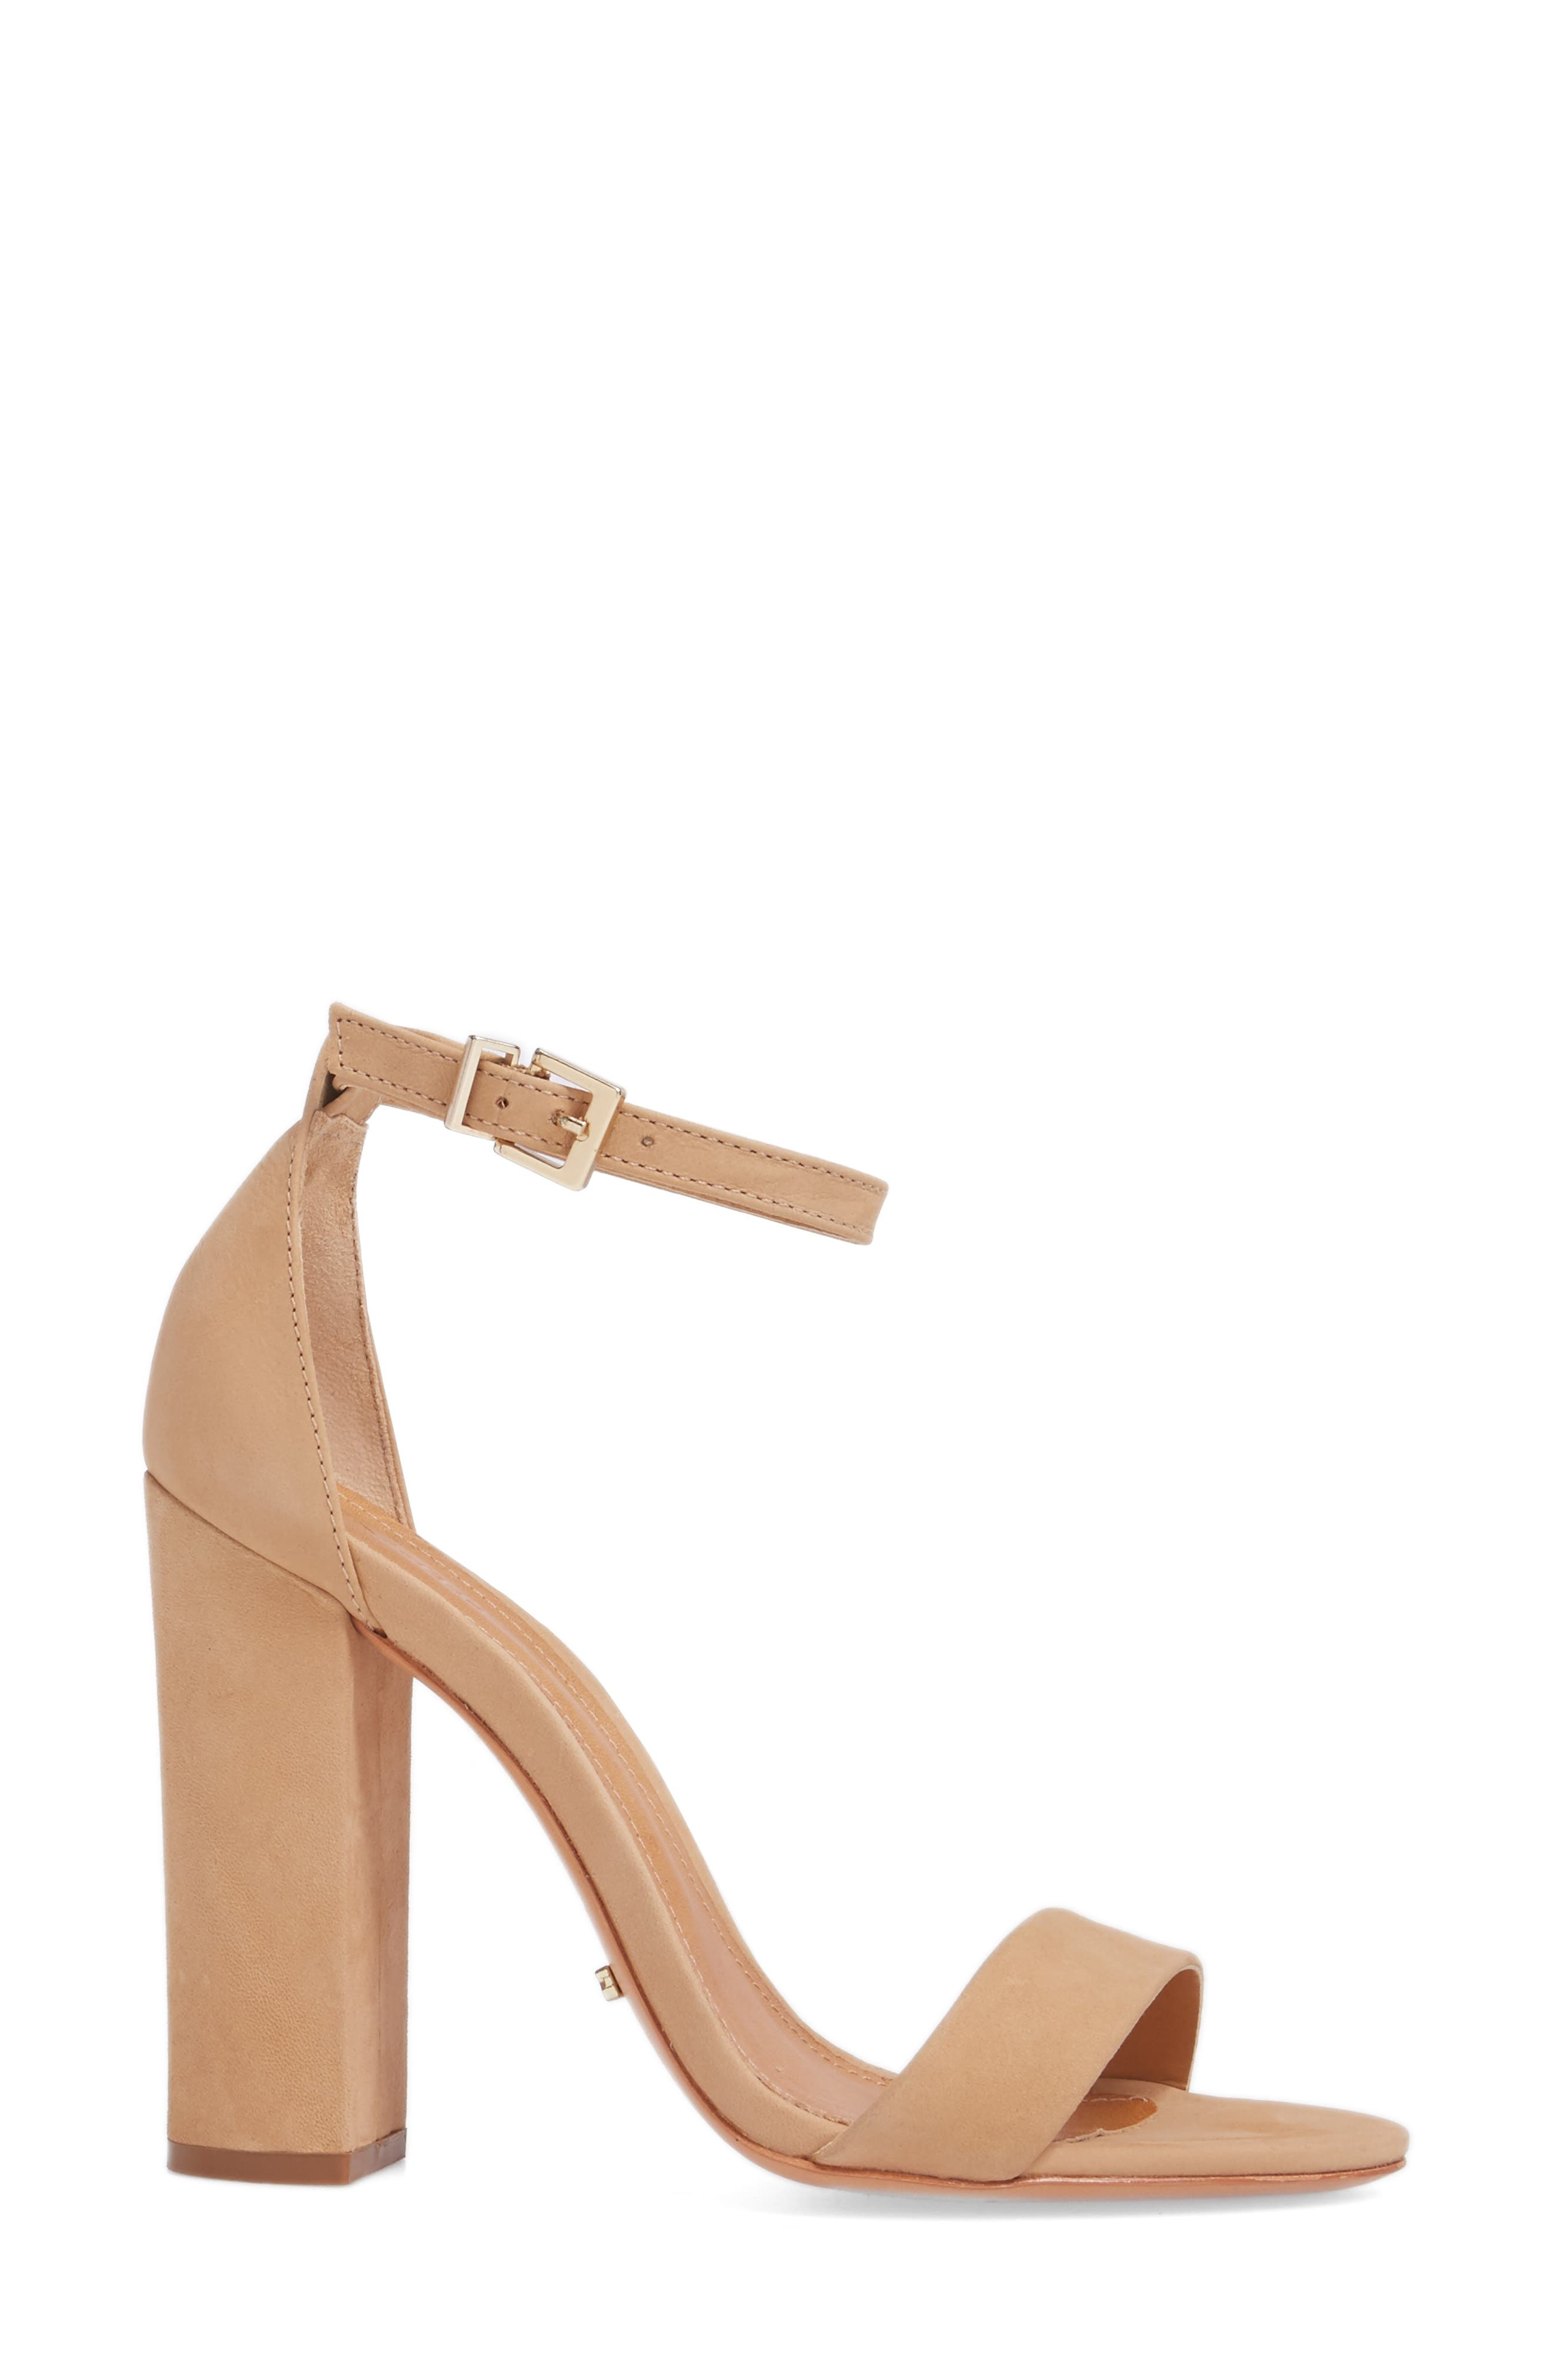 Alternate Image 3  - Schutz Enida Strappy Sandal (Women)